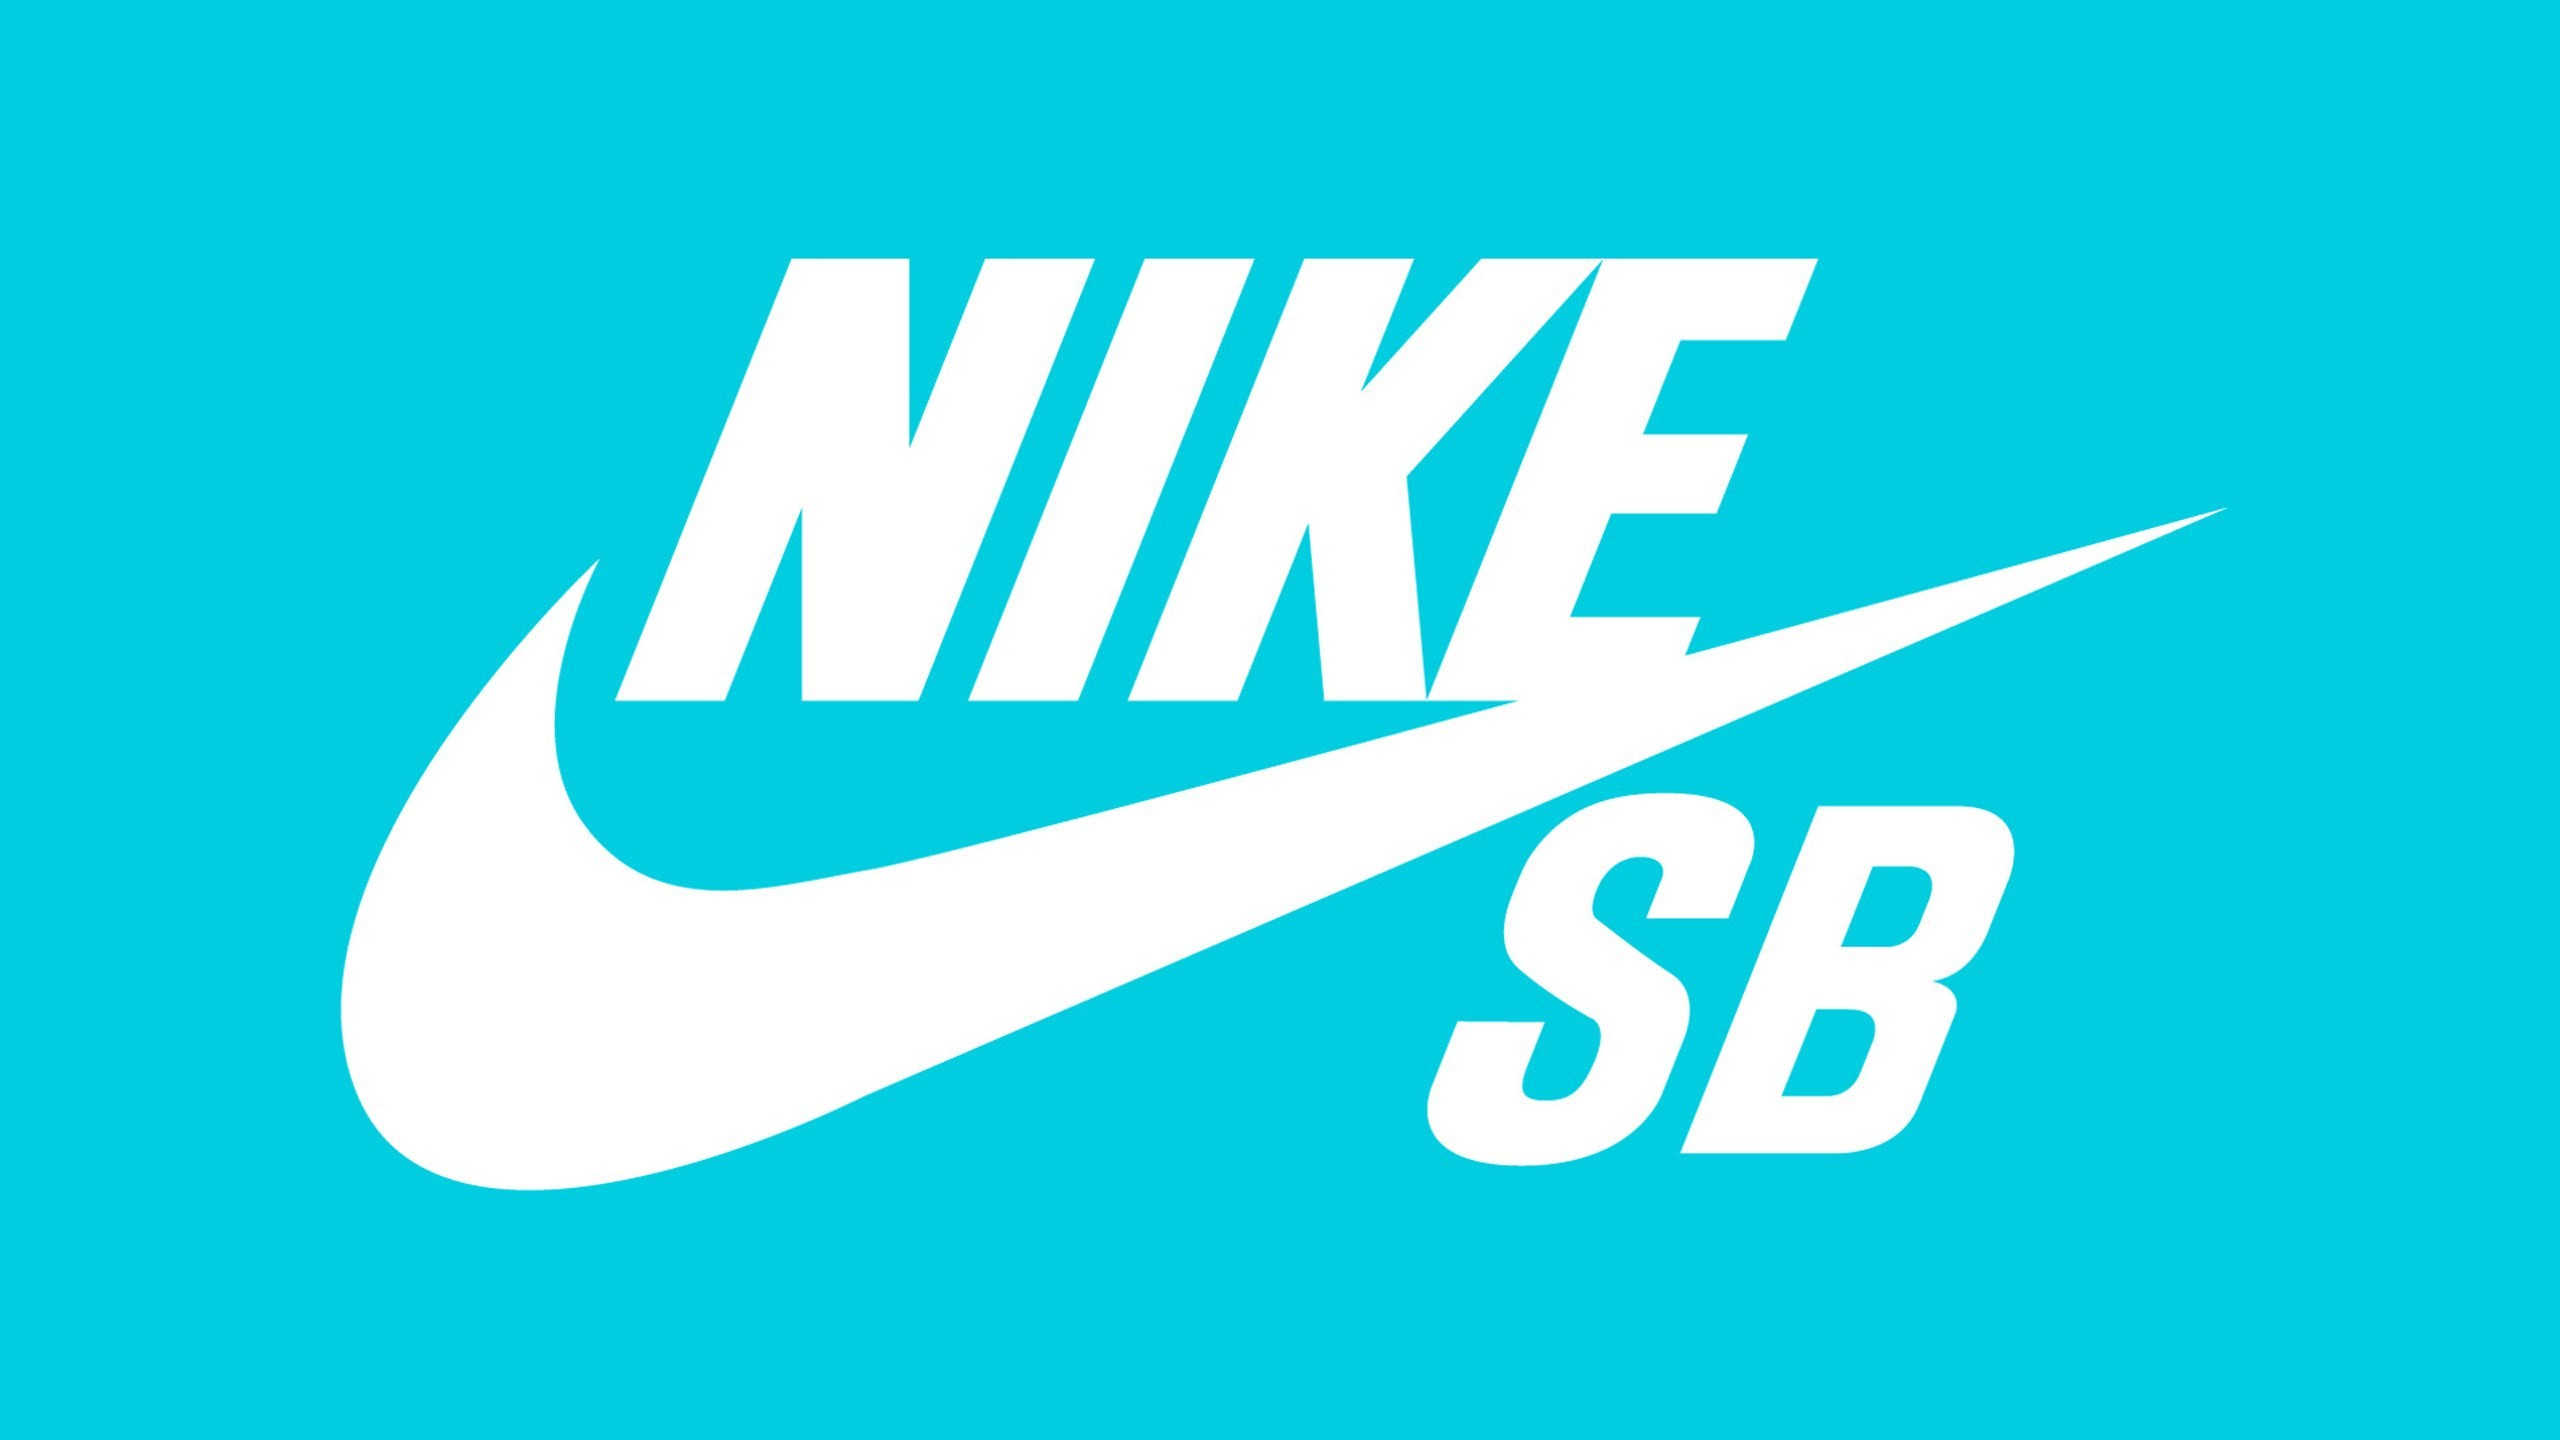 Cool nike wallpaper 65 images 1920x1200 wallpapers for cool nike wallpapers for ipad voltagebd Choice Image